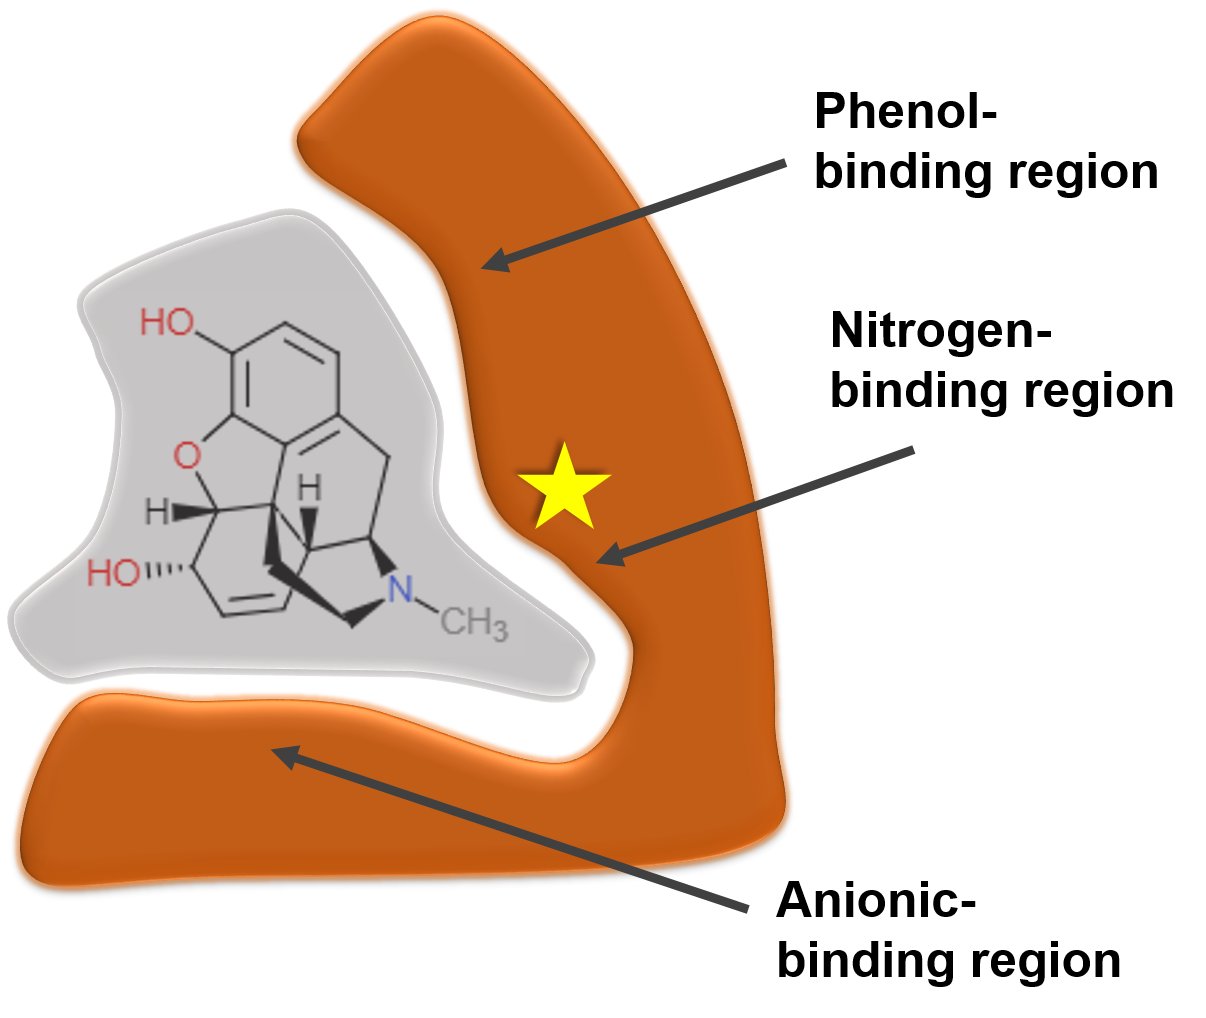 Figure 2: Schematic of the m-receptor binding morphine. Upon crossing the blood-brain-barrier, opioids bind the m-receptor which is responsible for the release of dopamine to produce a euphoric sensation. The main binding sites are labeled here, with the star denoting the nitrogen-binding region which is responsible for a majority of the activity of opioids. Image credit: Kristina Garske